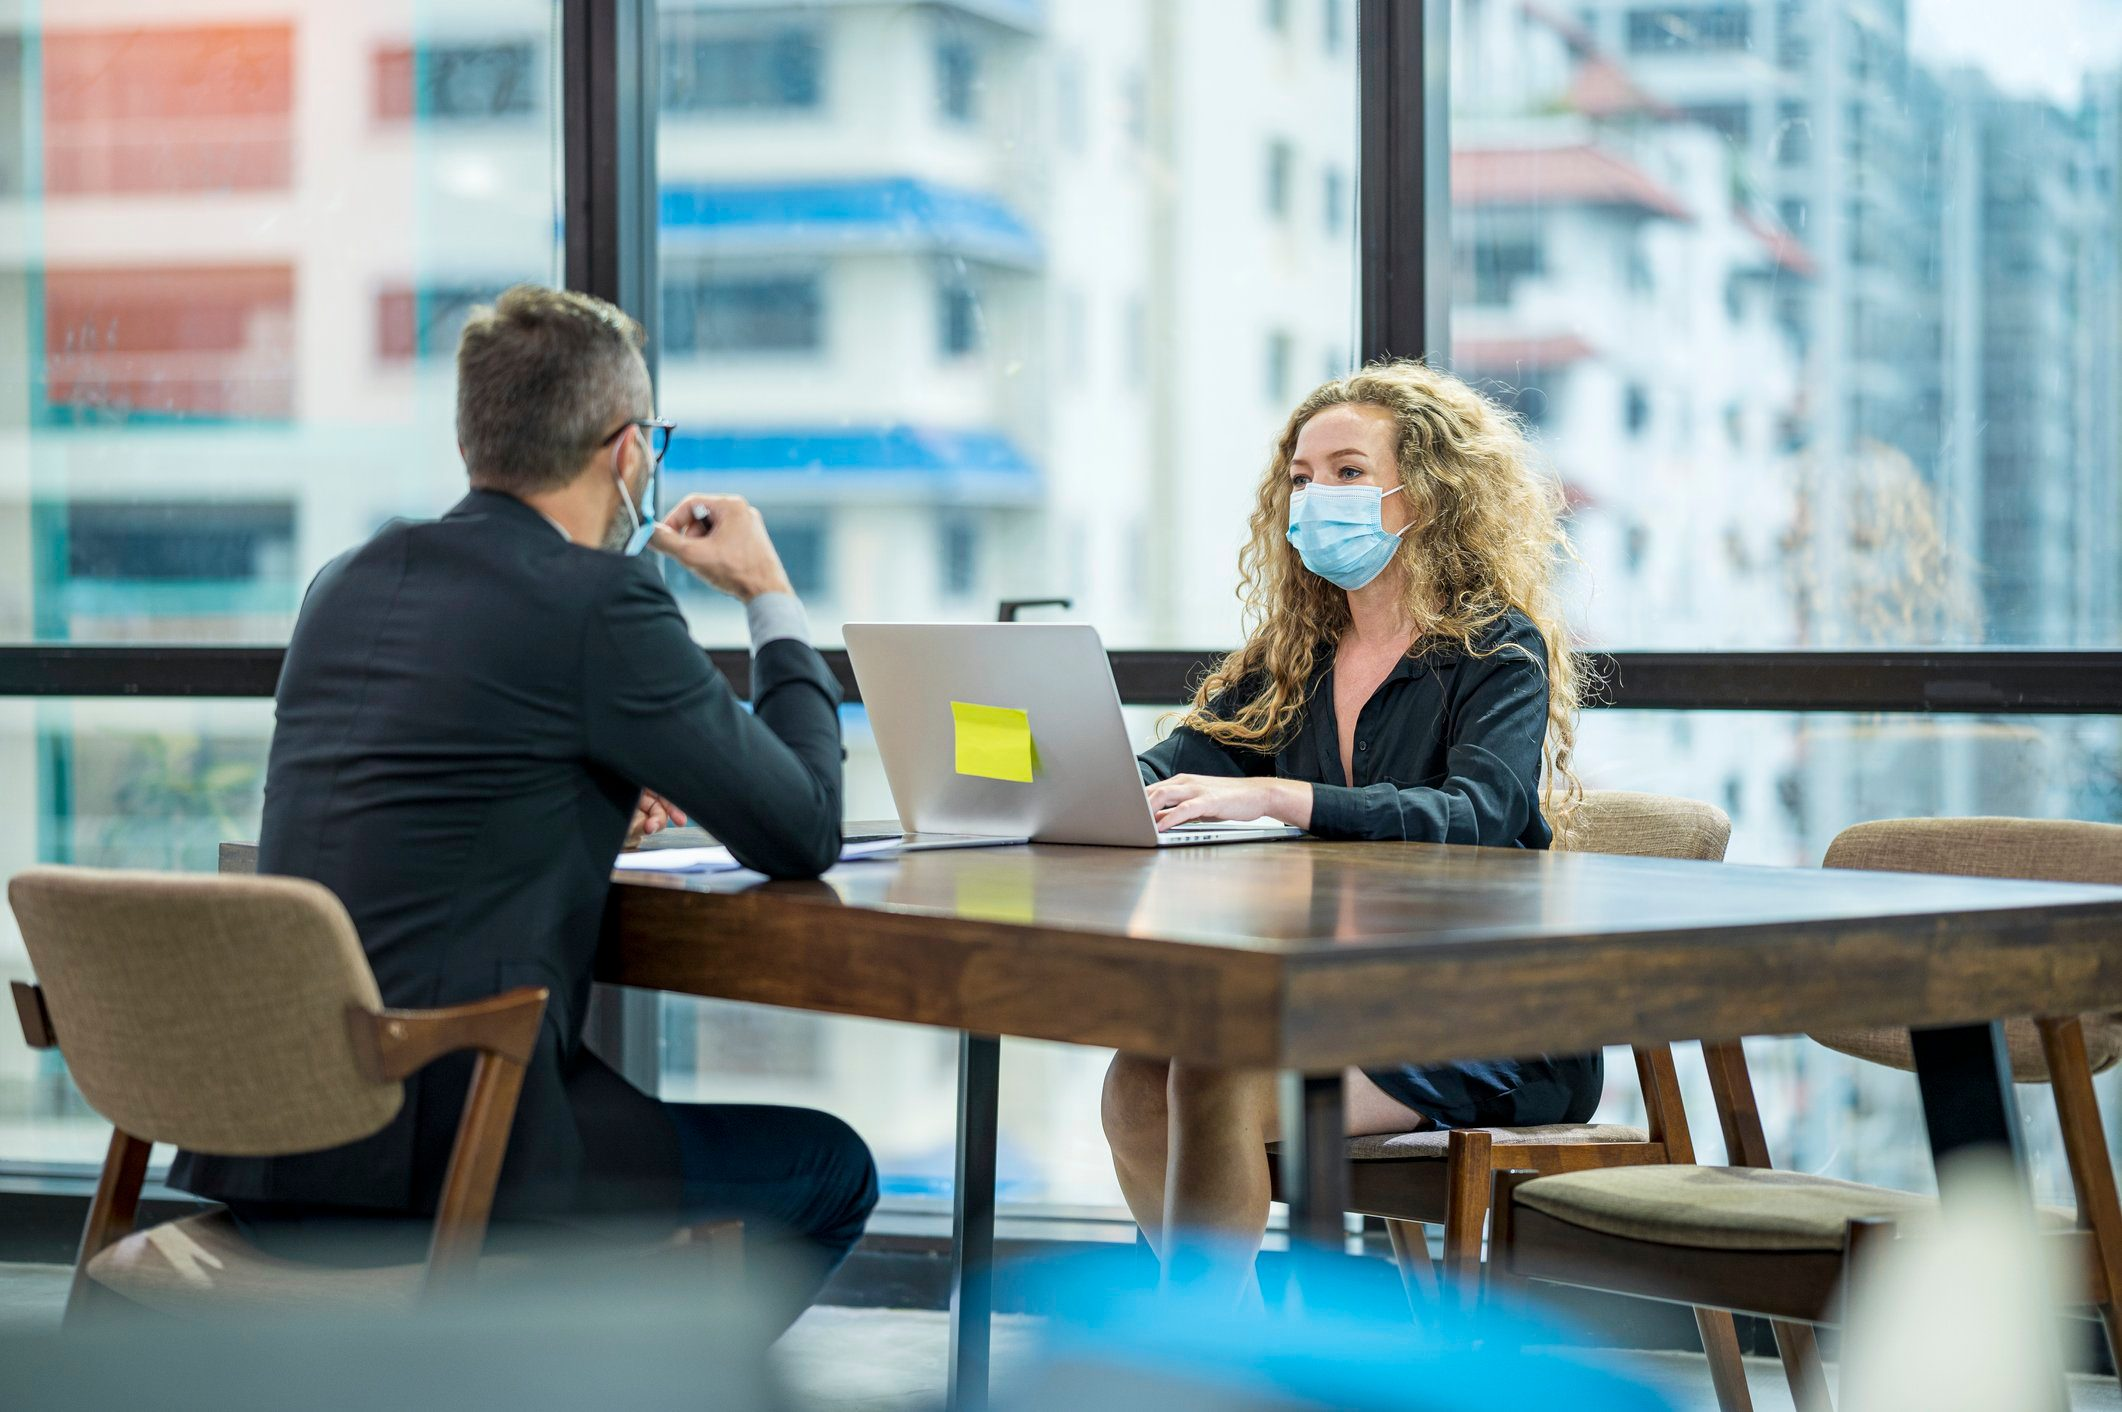 Colleagues decision together in the skyscraper office. They are wearing medical face mask during spread of virus.